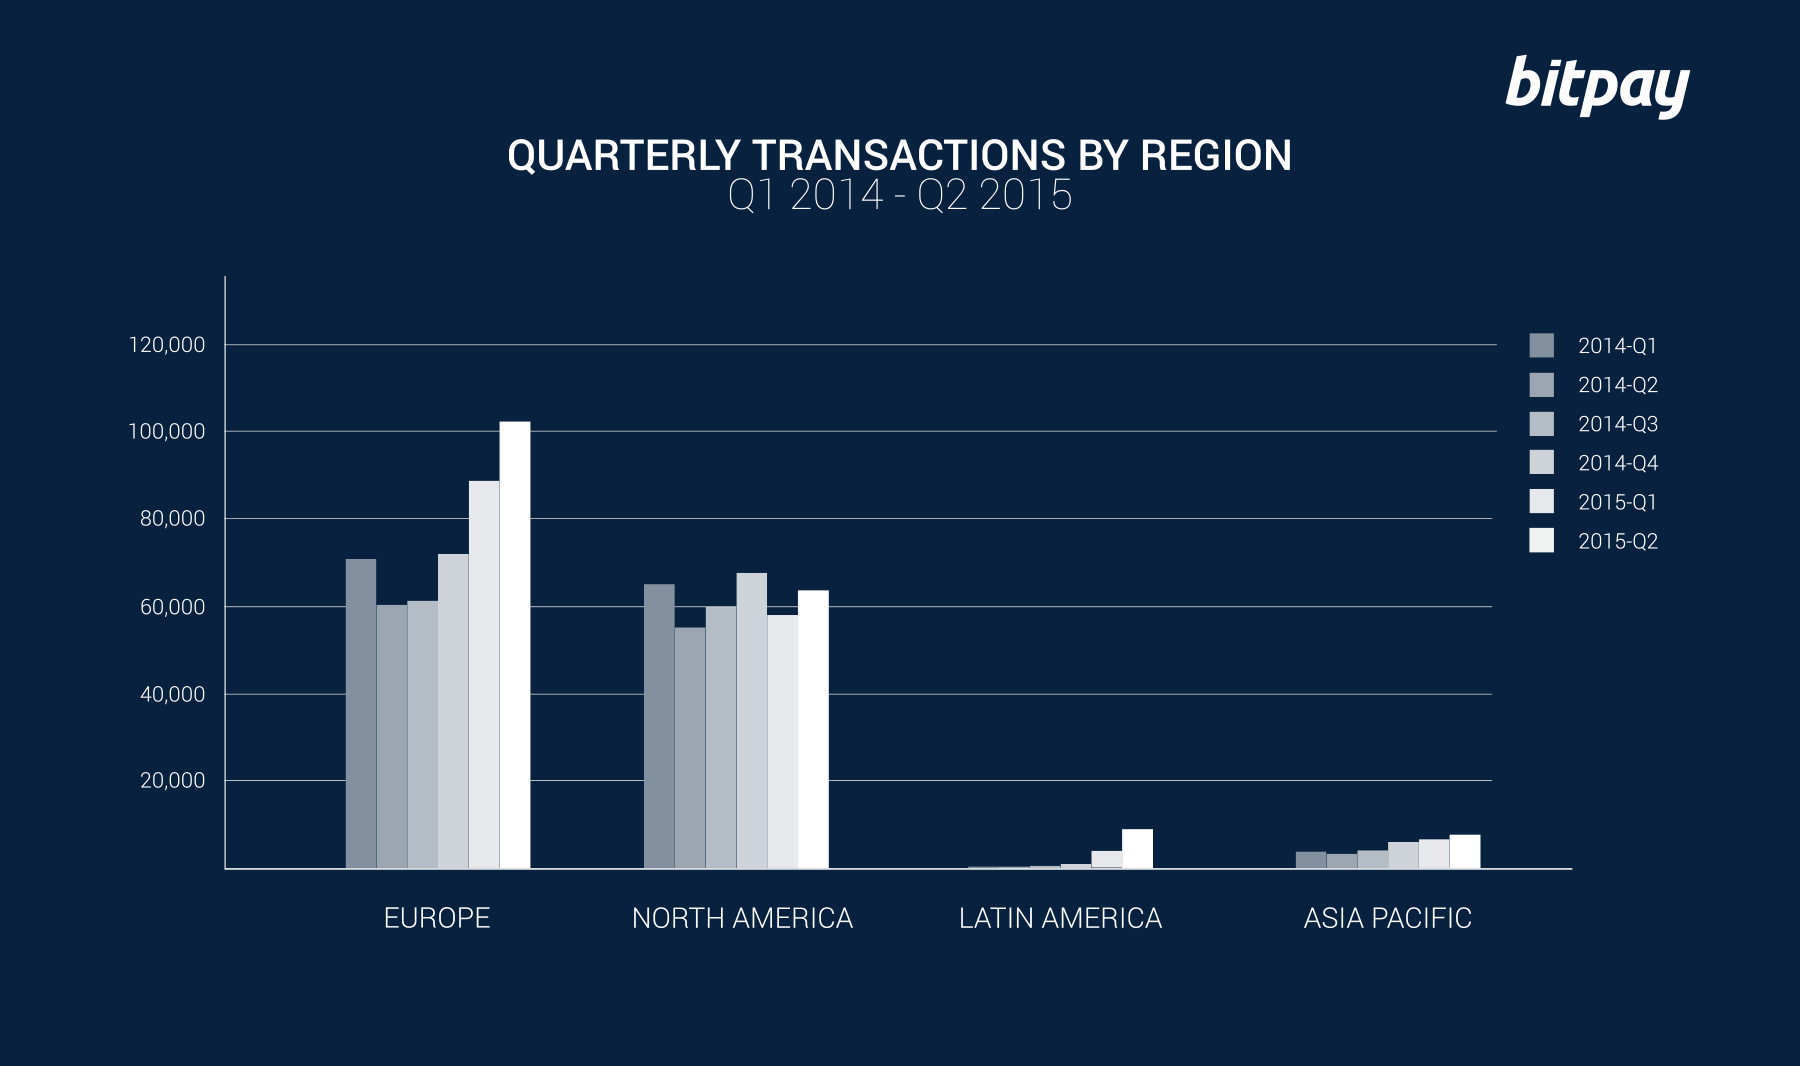 Quarterly Transactions